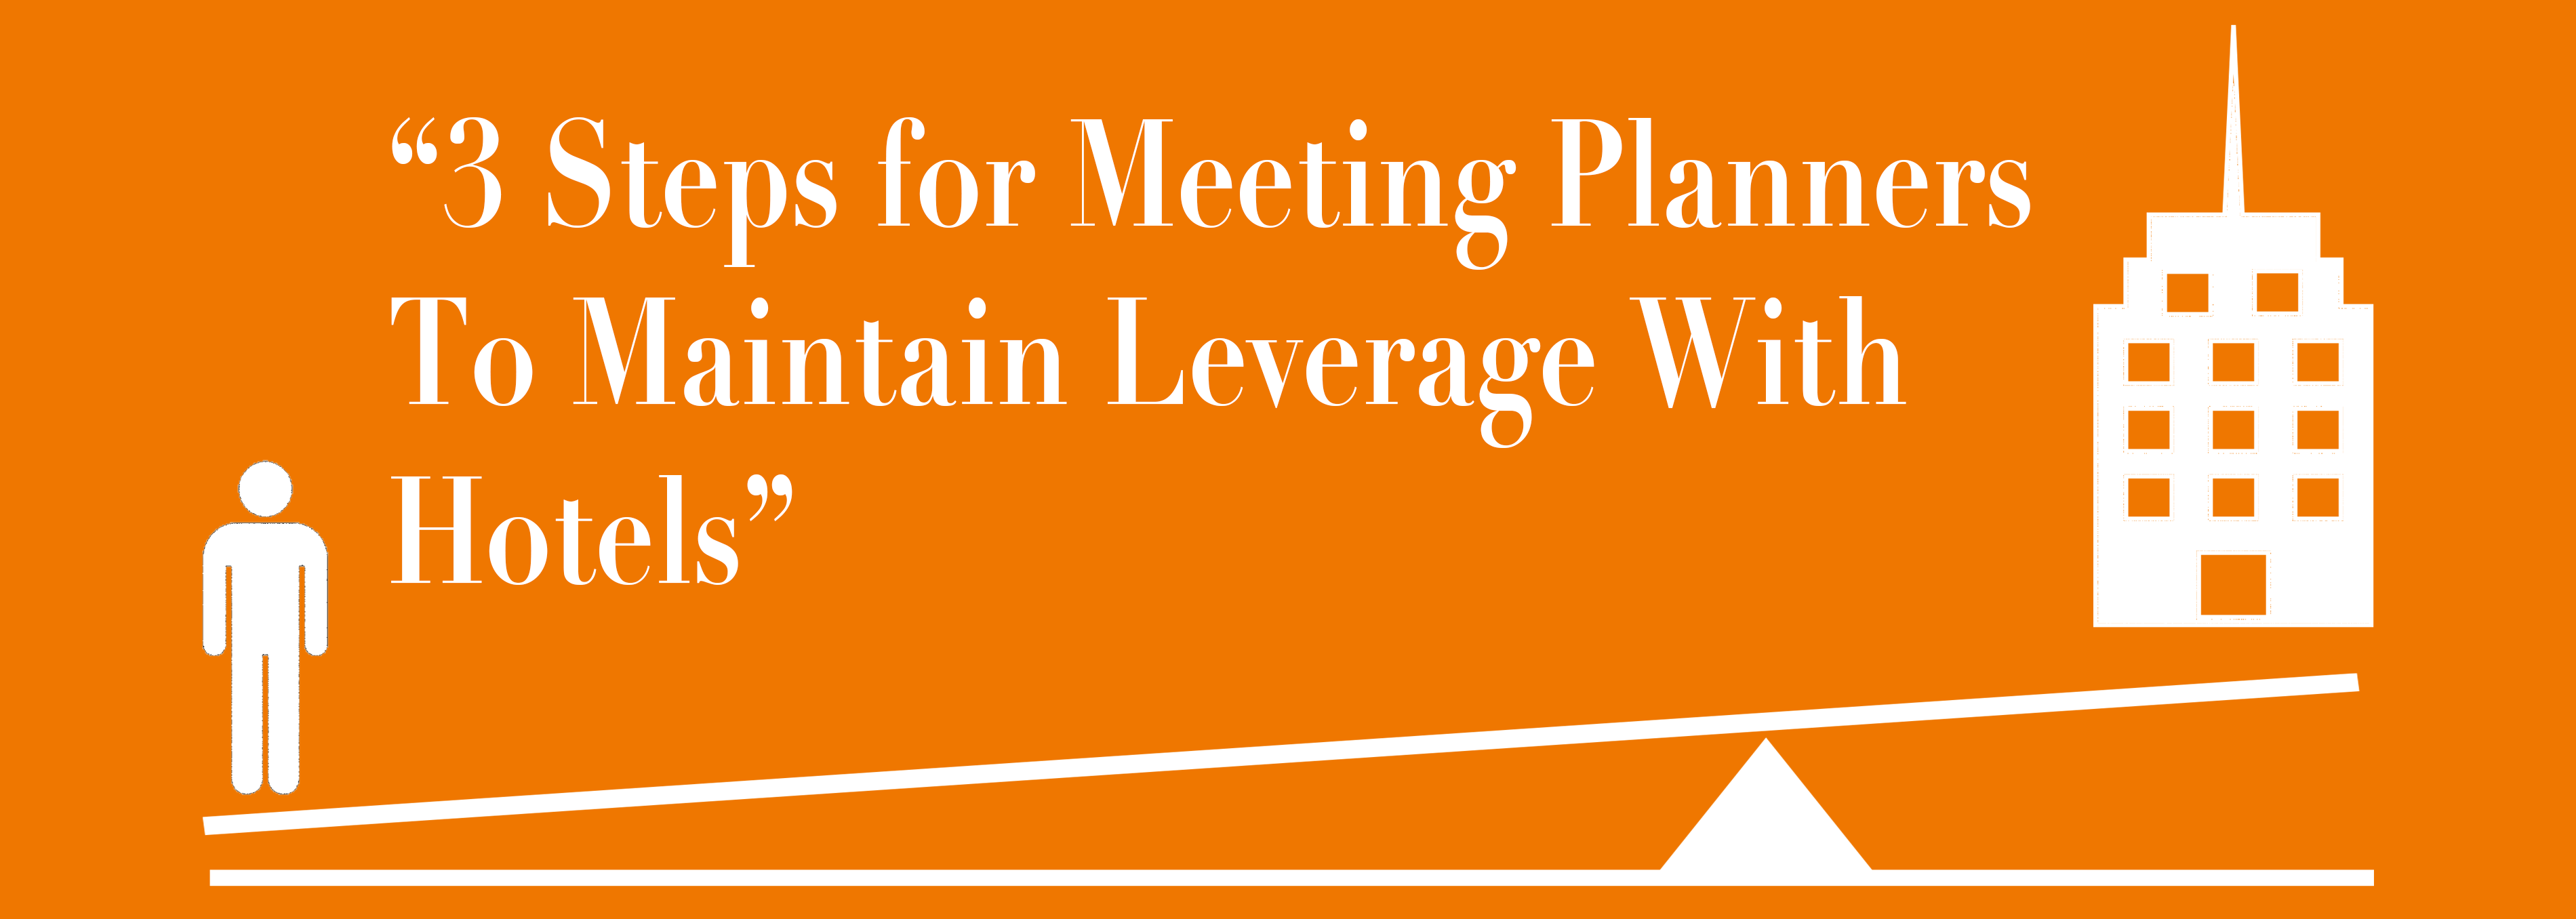 3 Steps for Meeting Planners To Maintain Leverage With Hotels